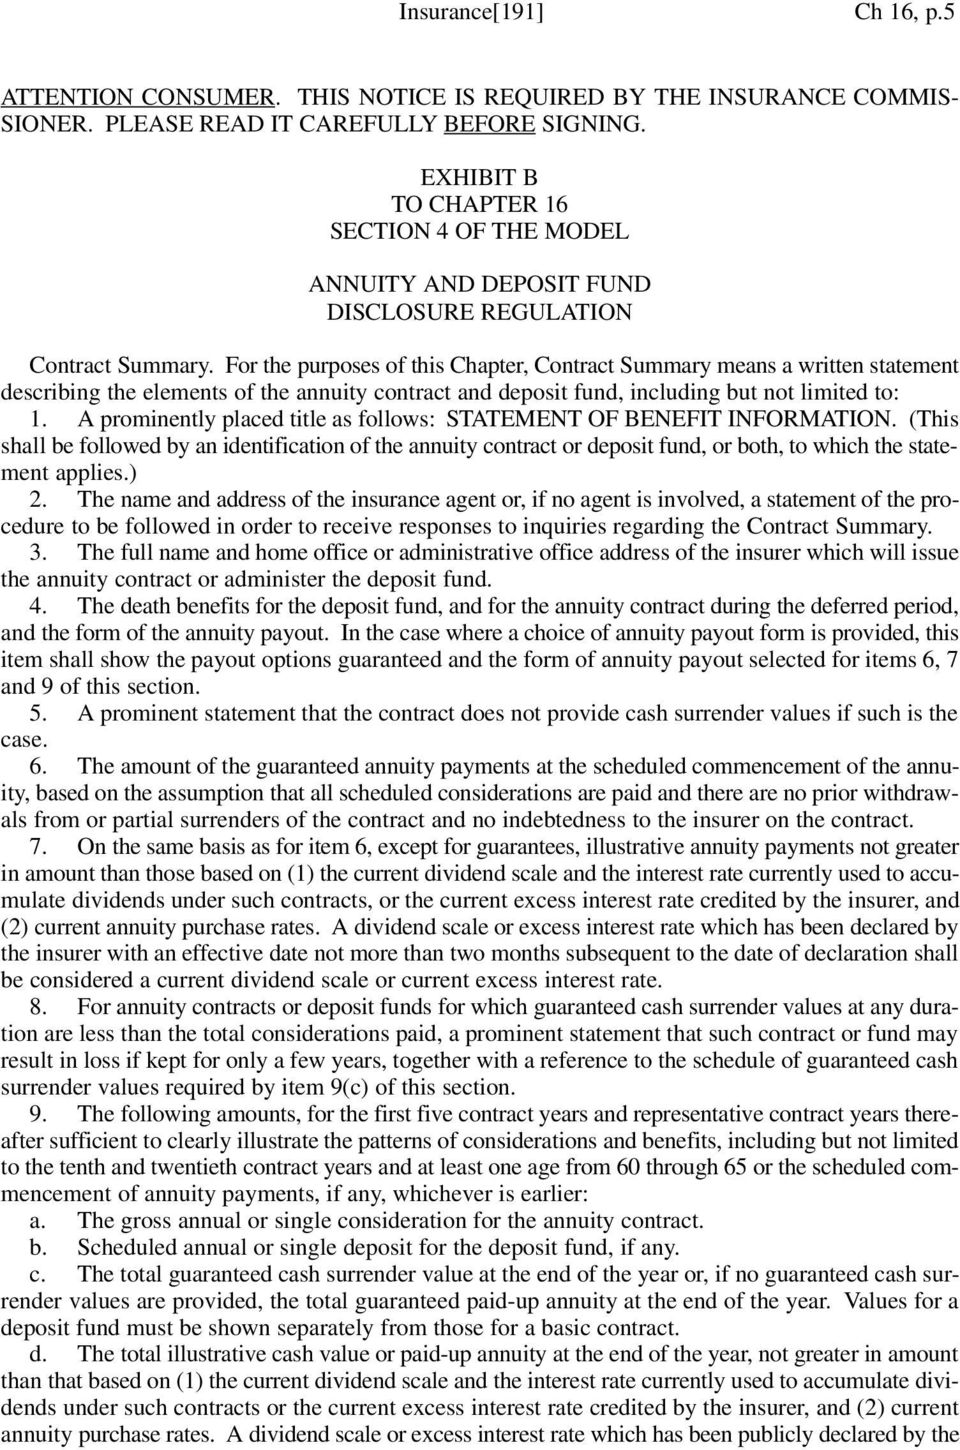 For the purposes of this Chapter, Contract Summary means a written statement describing the elements of the annuity contract and deposit fund, including but not limited to: 1.